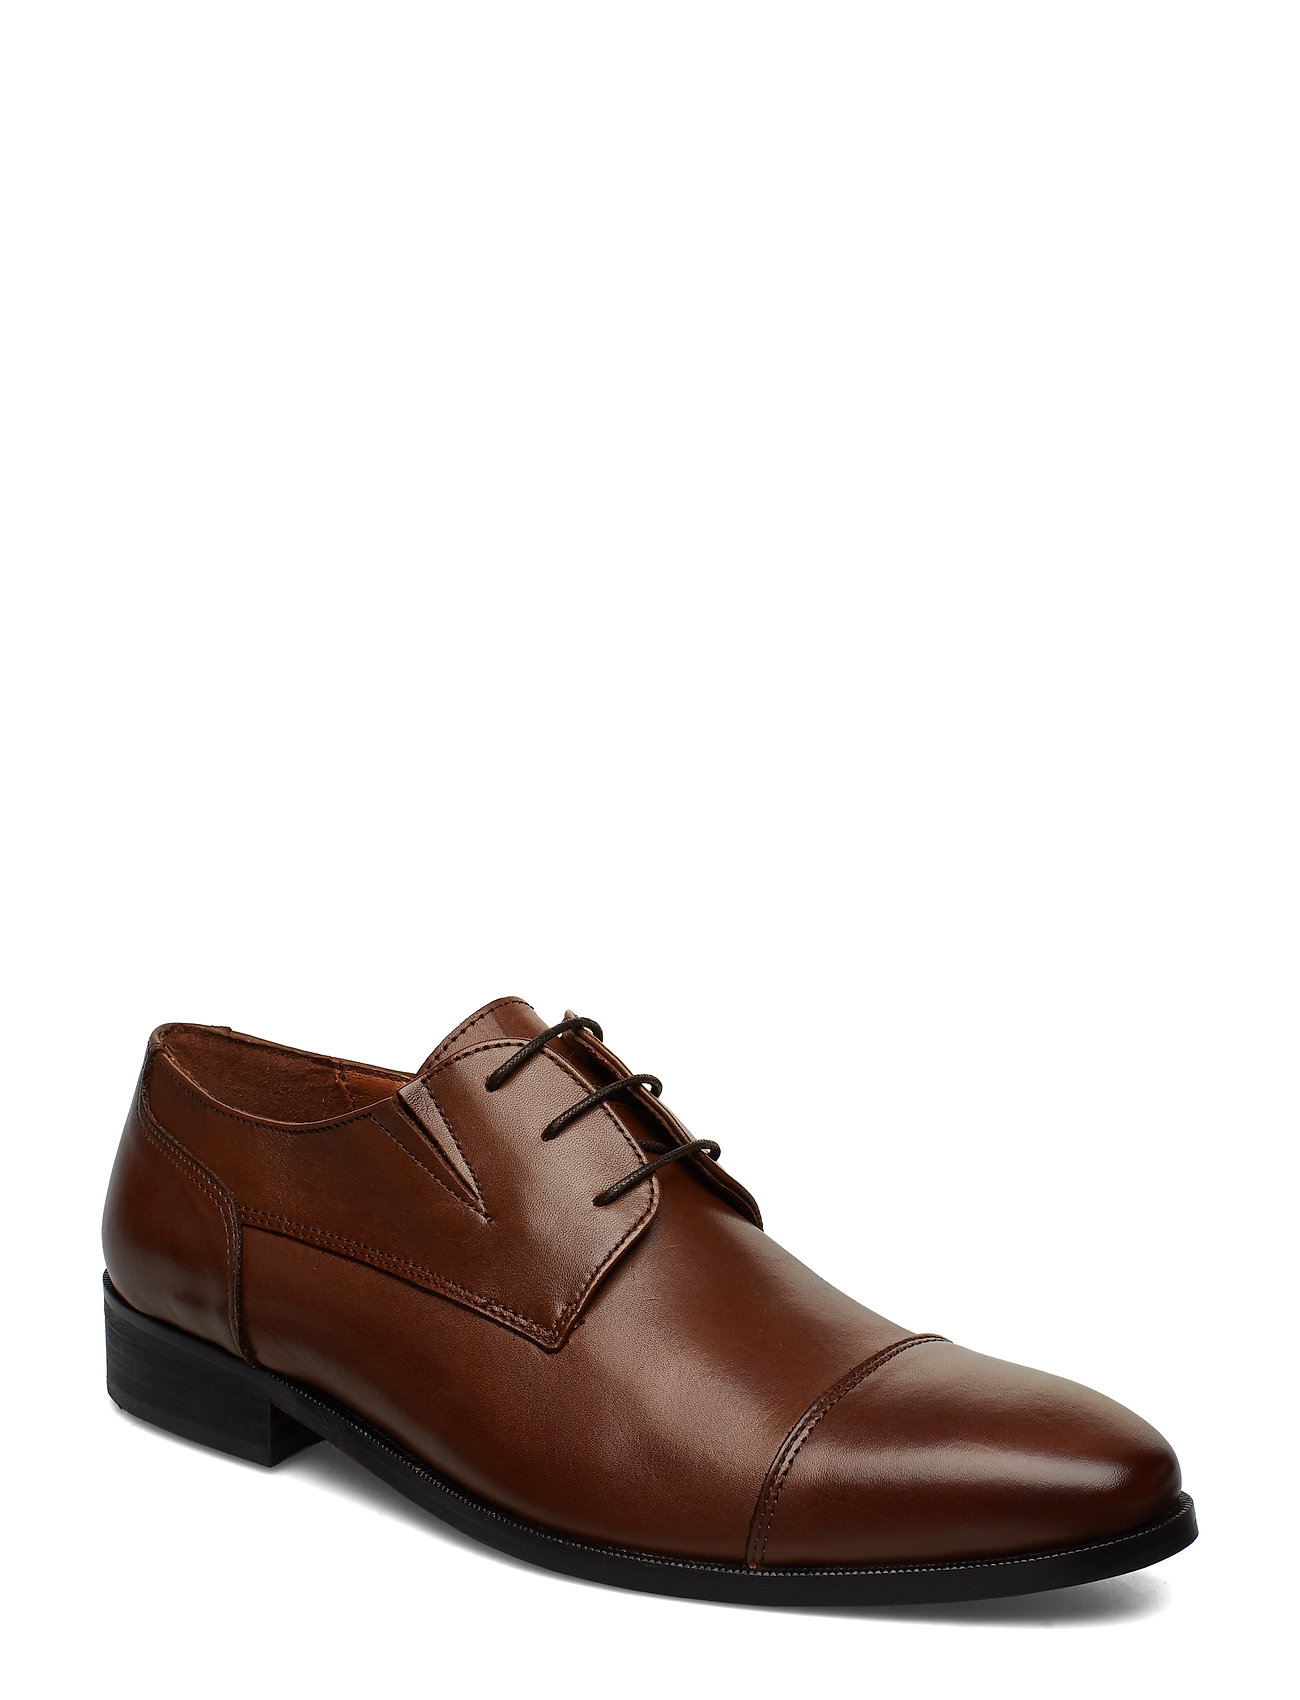 Image of Classic Leather Shoe Shoes Business Laced Shoes Brun Lindbergh (3213733965)